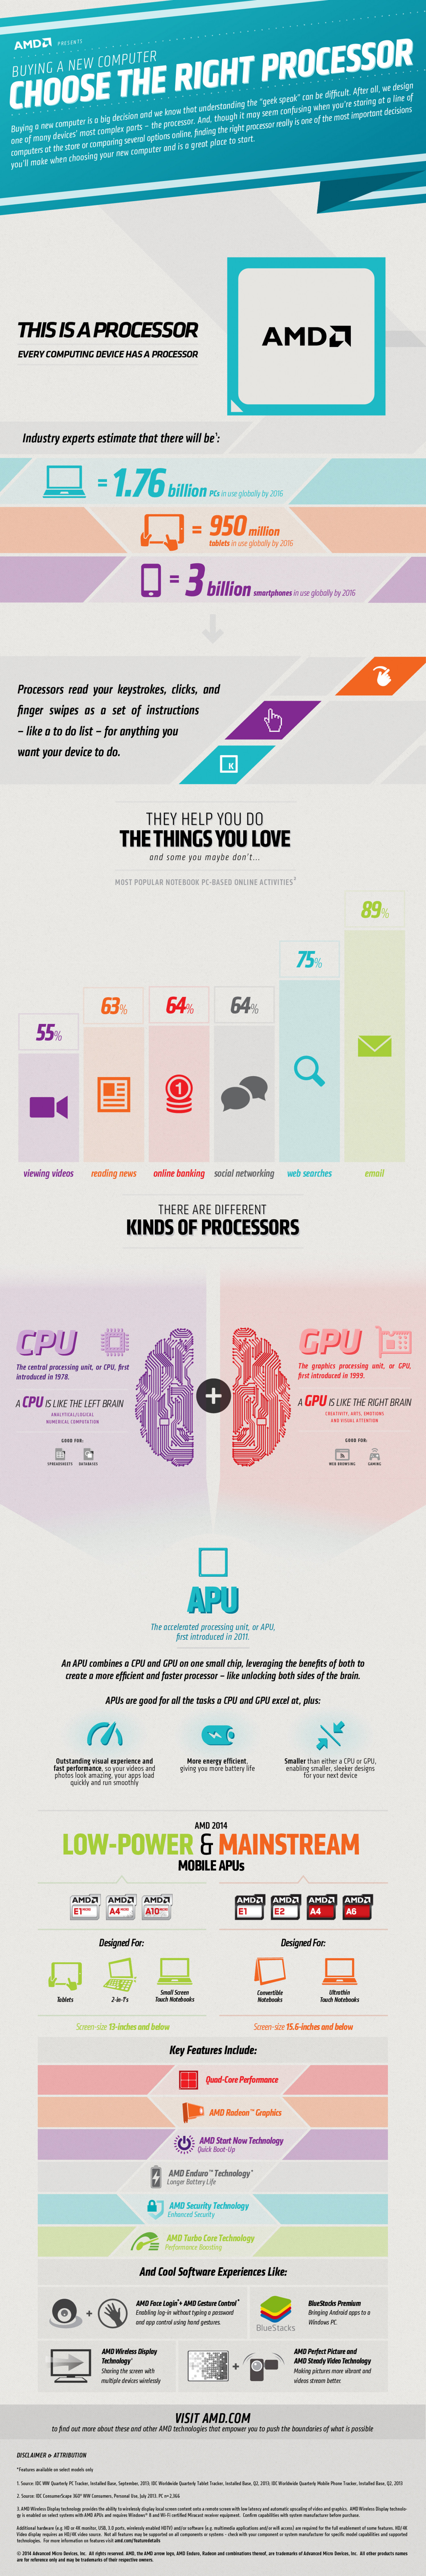 Choose the Right Processor - AMD 2014 Low-Power and Mainstream Mobile APUs Infographic